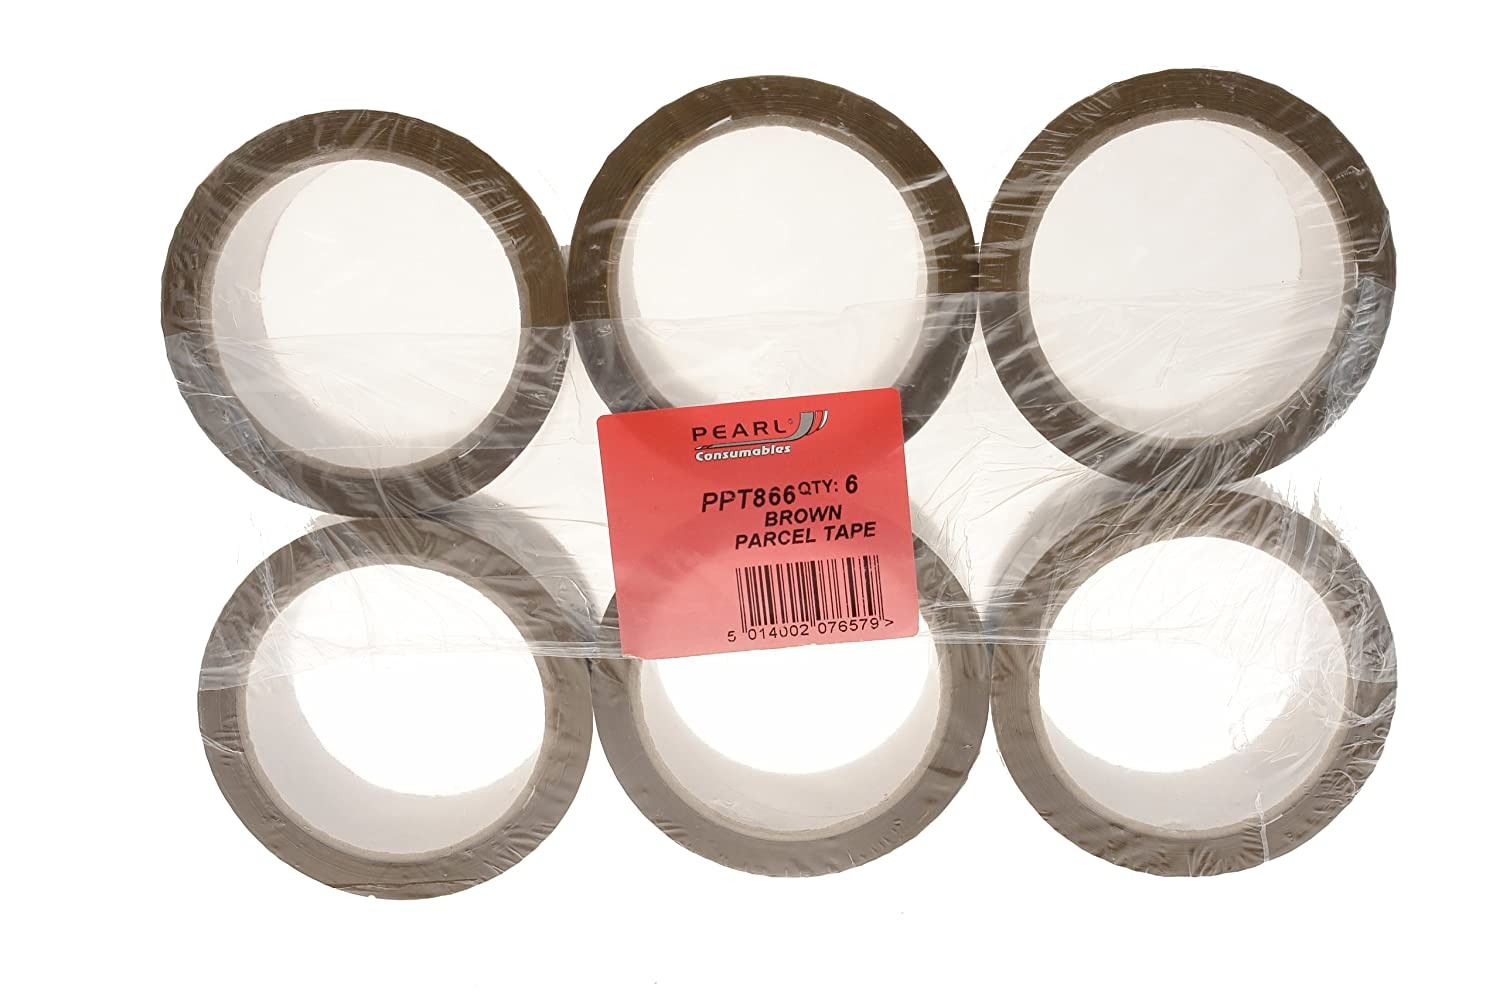 Pearl PPT866 50mm x 66m Parcel Tape (Pack of 6) Pearl Automotive